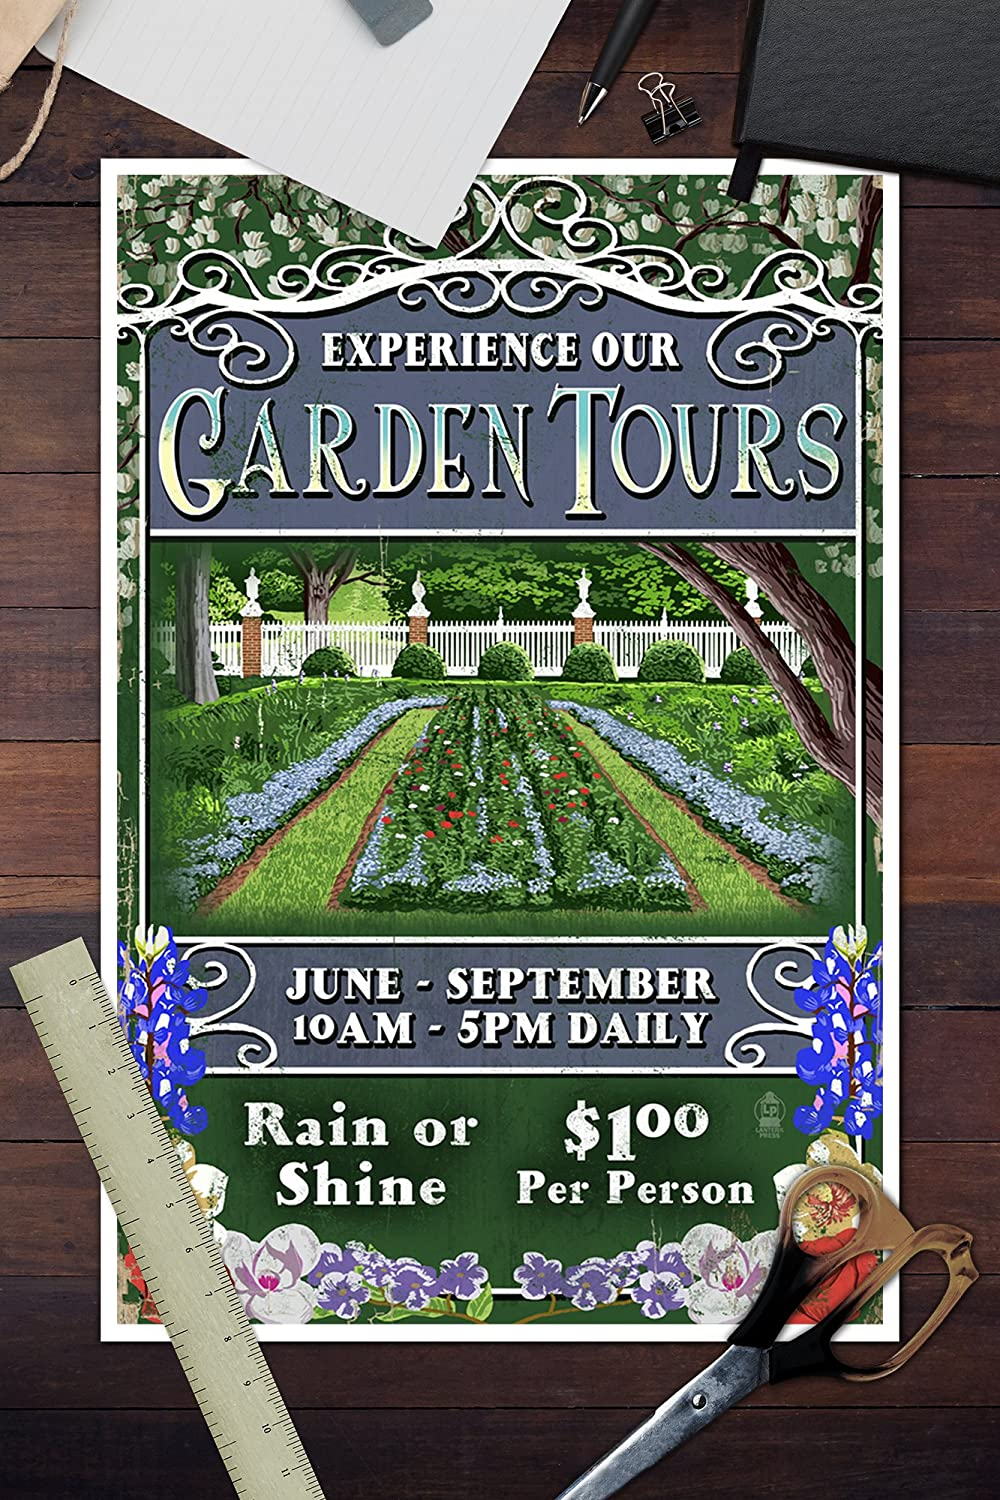 Amazon.com: Garden Tours - Vintage Sign (12x18 Fine Art Print, Home Wall Decor Artwork Poster): Posters & Prints